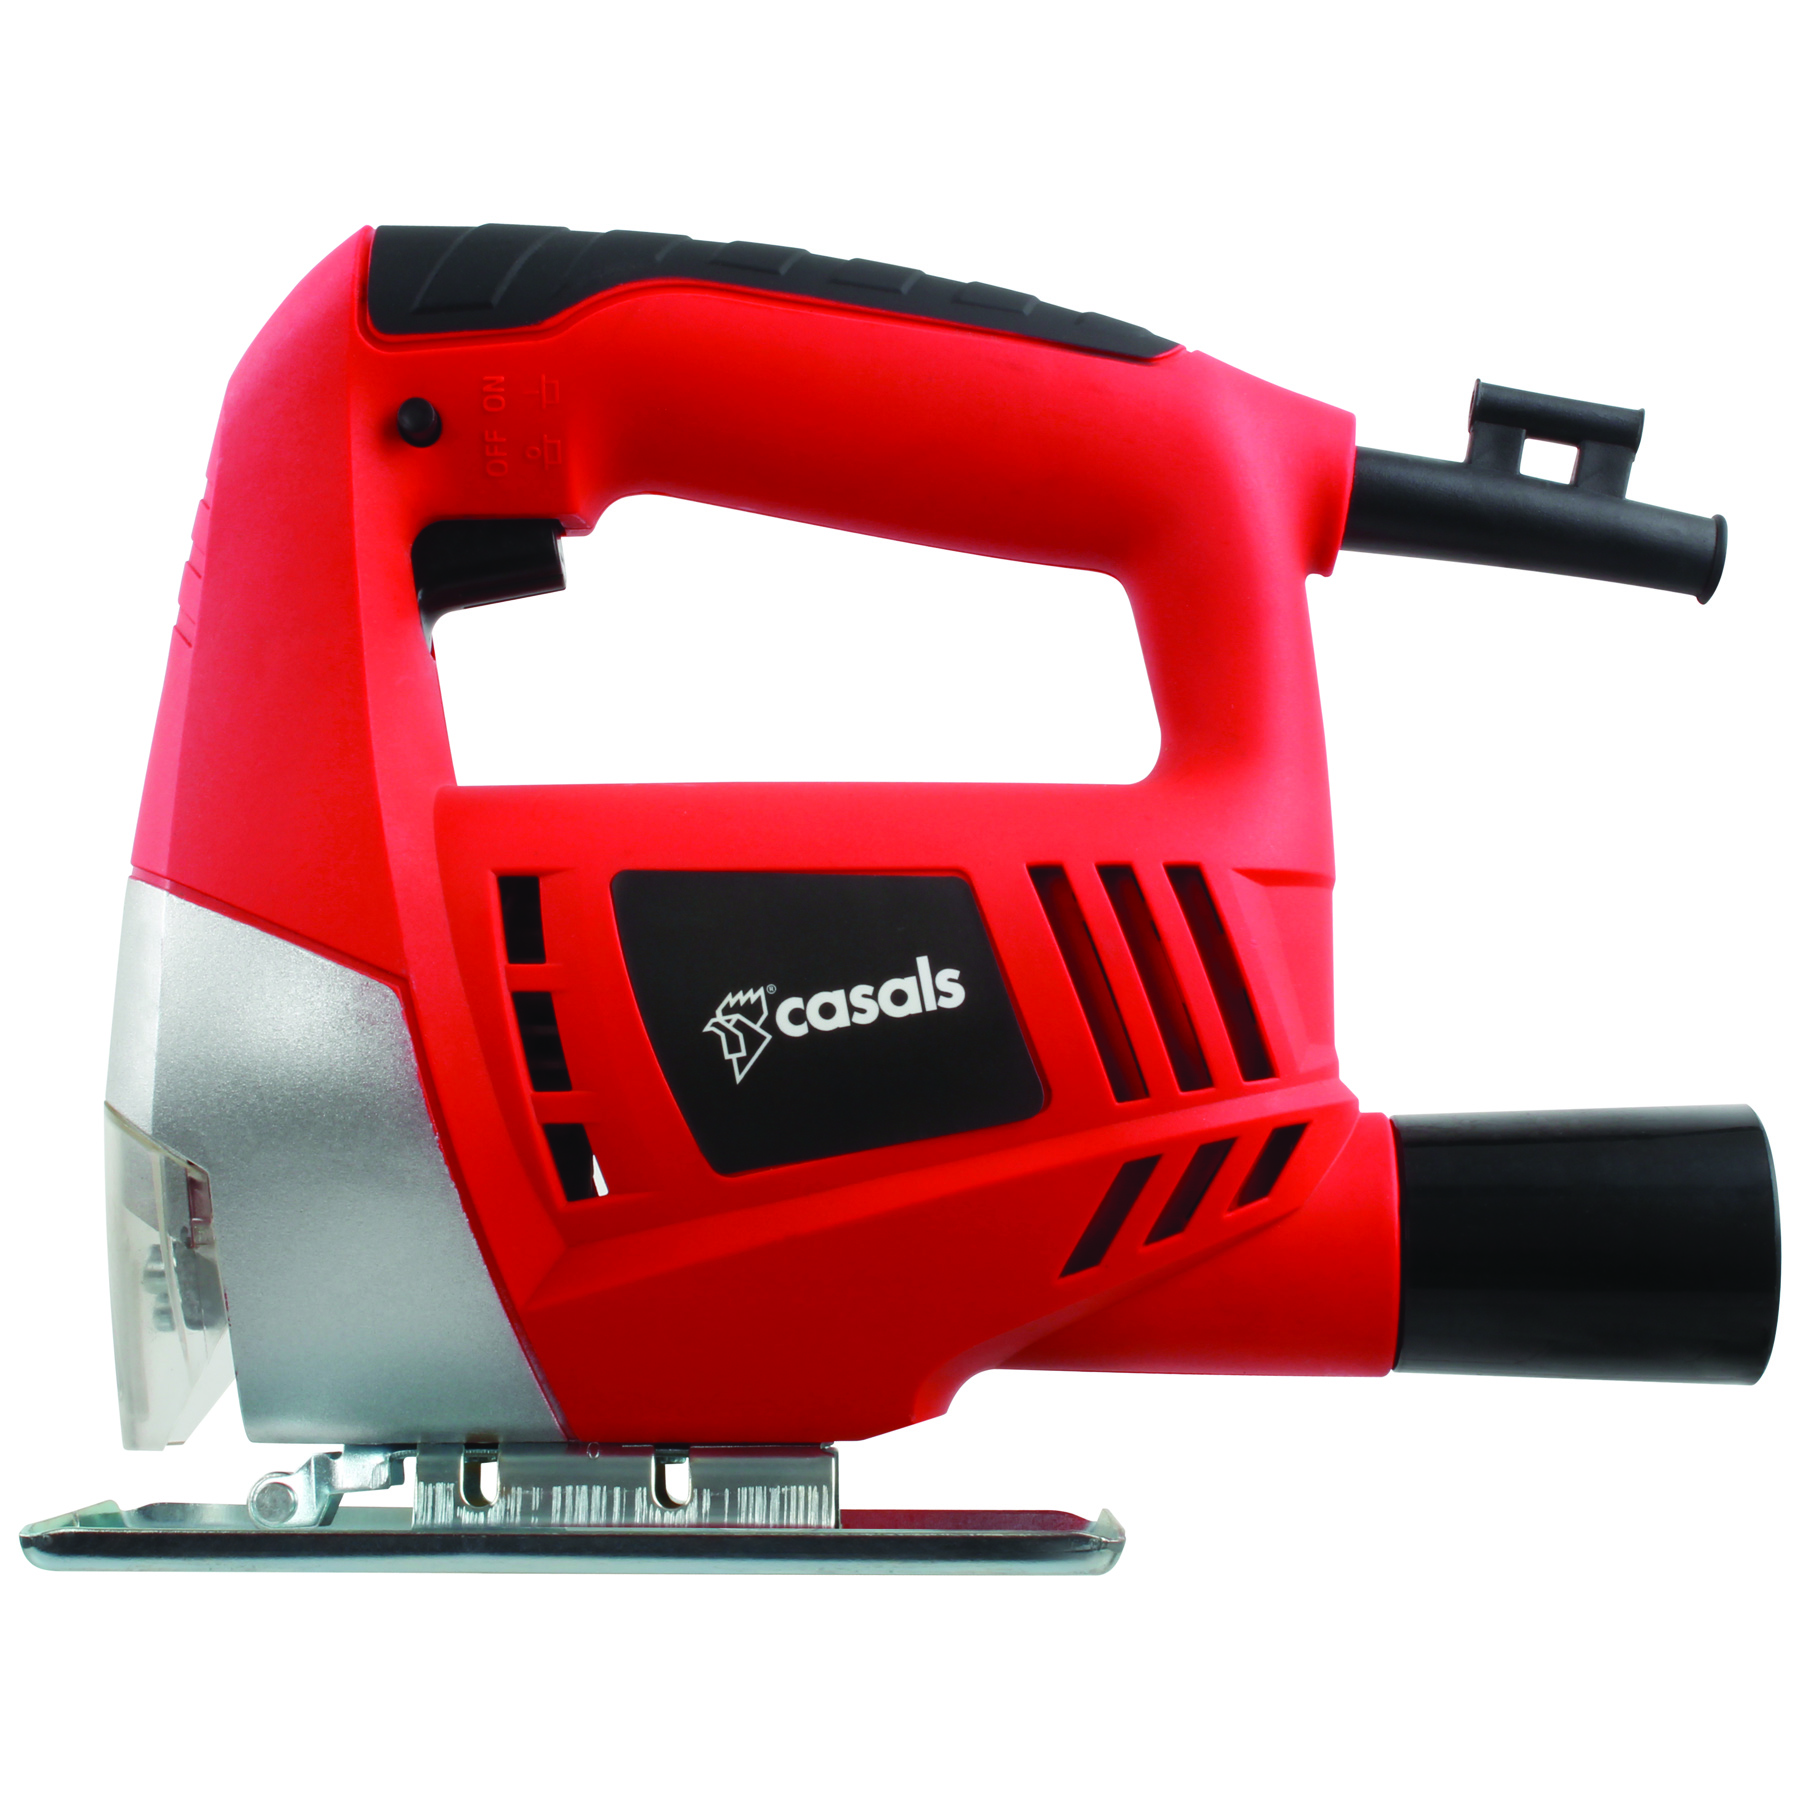 Casals Jigsaw With Triggerock Plastic Red 55mm 400W